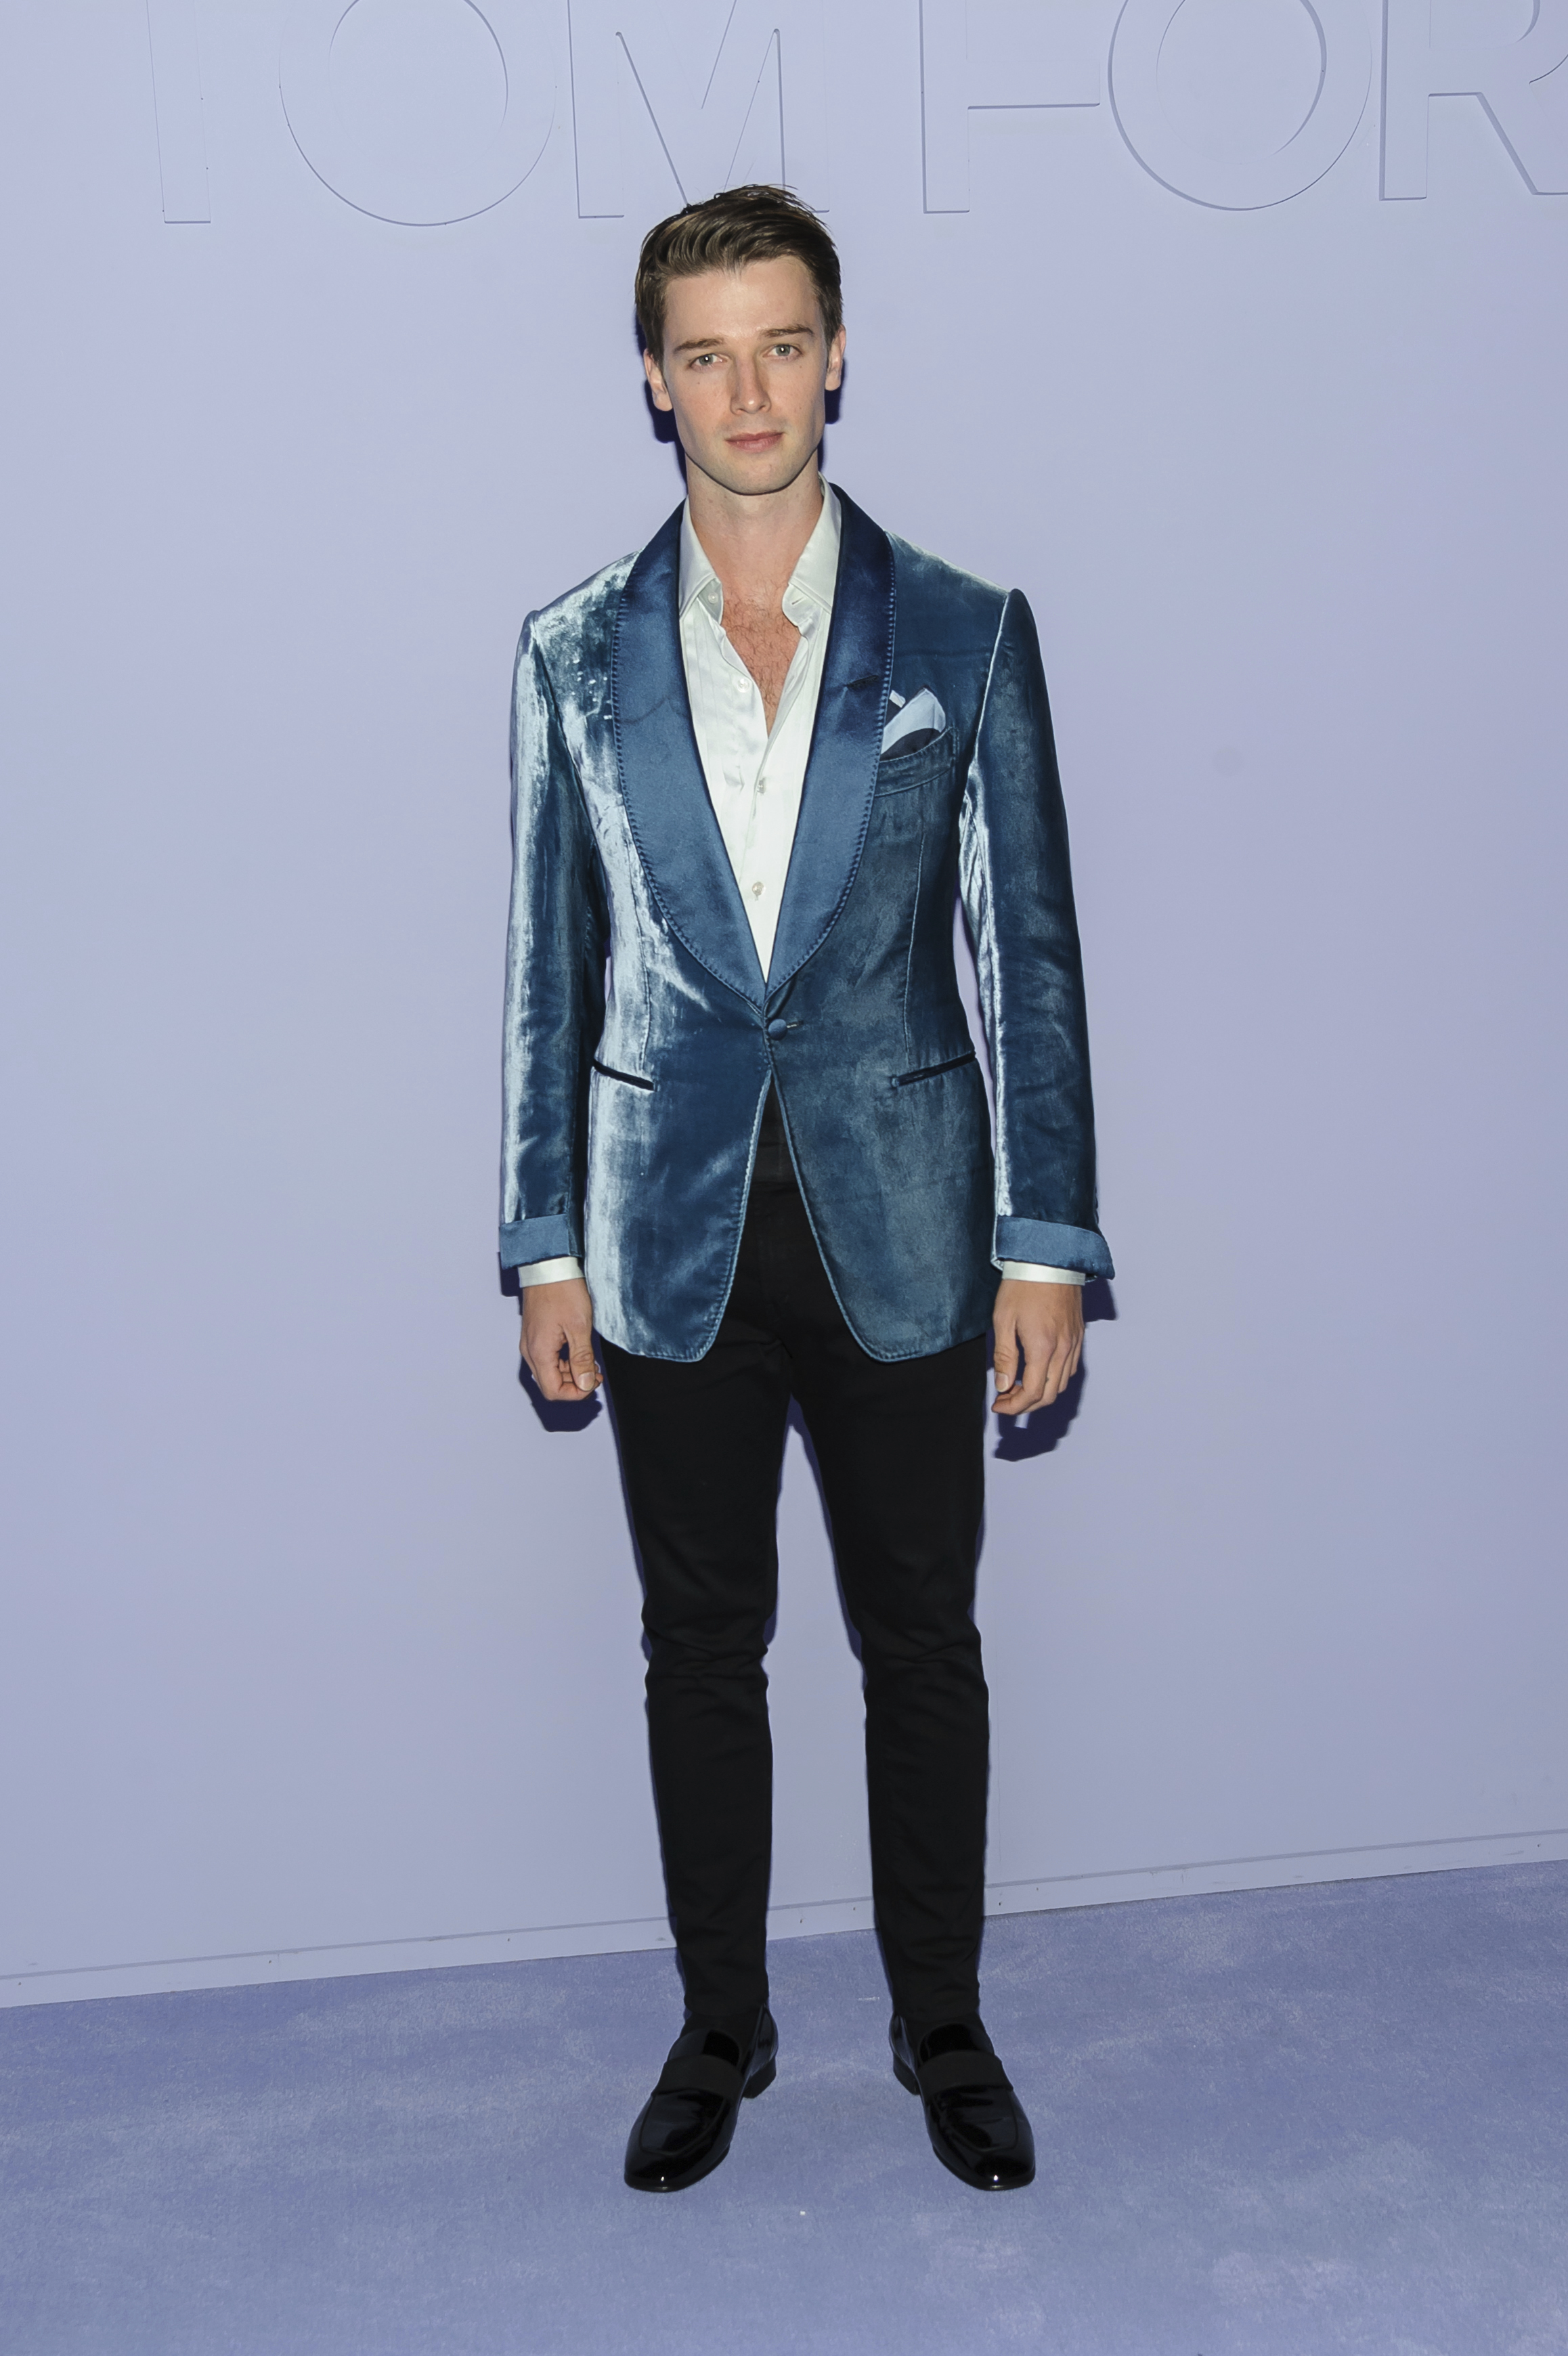 Patrick Schwarzenegger is seen at Tom Ford at Park Avenue Armory on Tuesday, Feb. 6, 2018, in New York, NY. (Photo by Christopher Smith/Invision/AP)